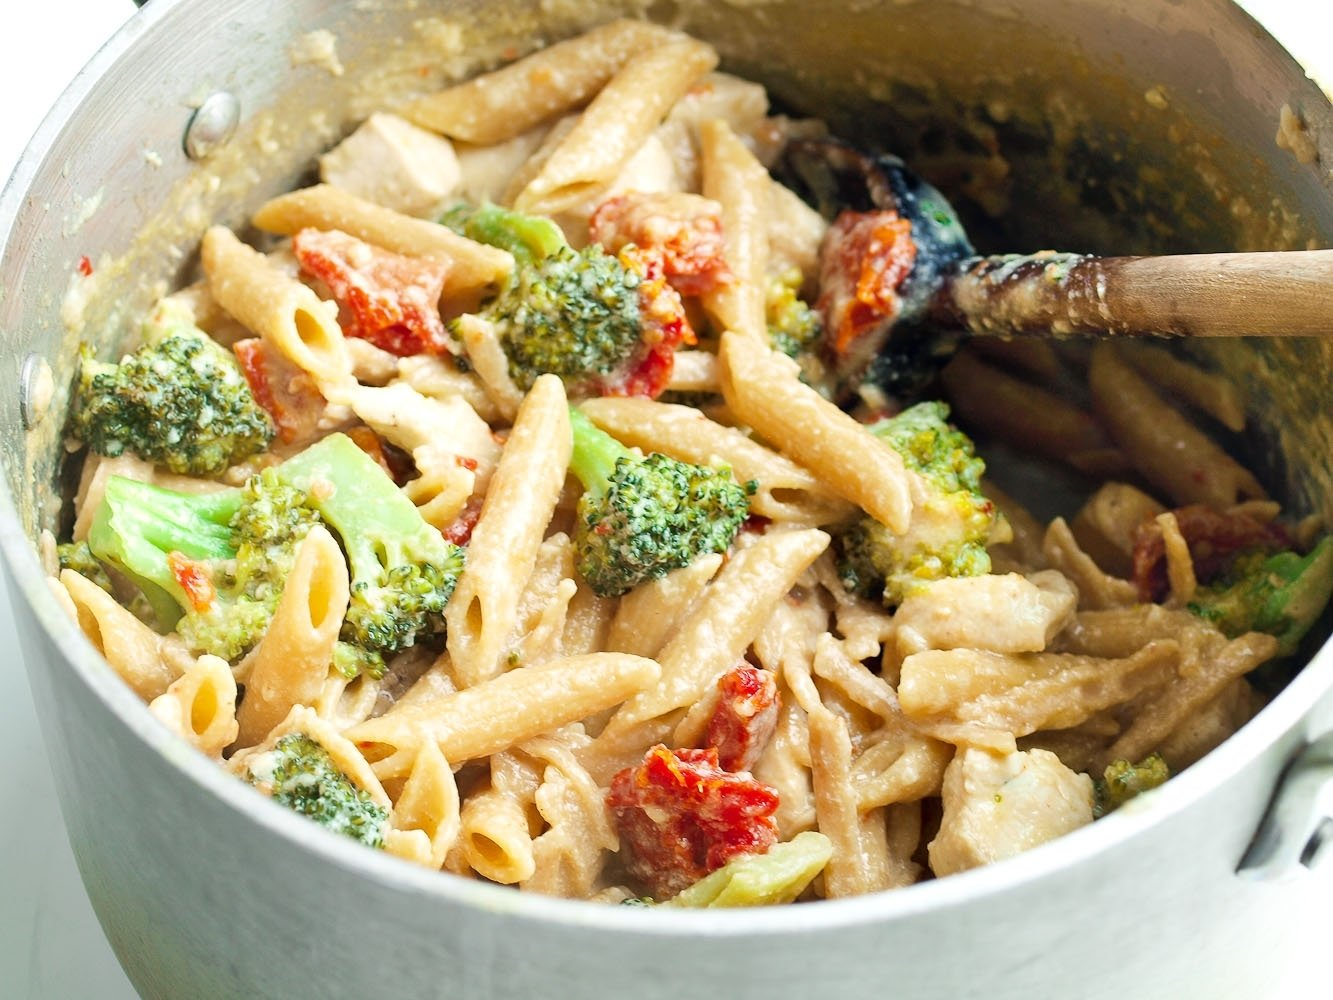 10 Ideal Ideas To Cook For Dinner tangy one pot chicken and veggie pasta dinner healthy ideas for kids 2020